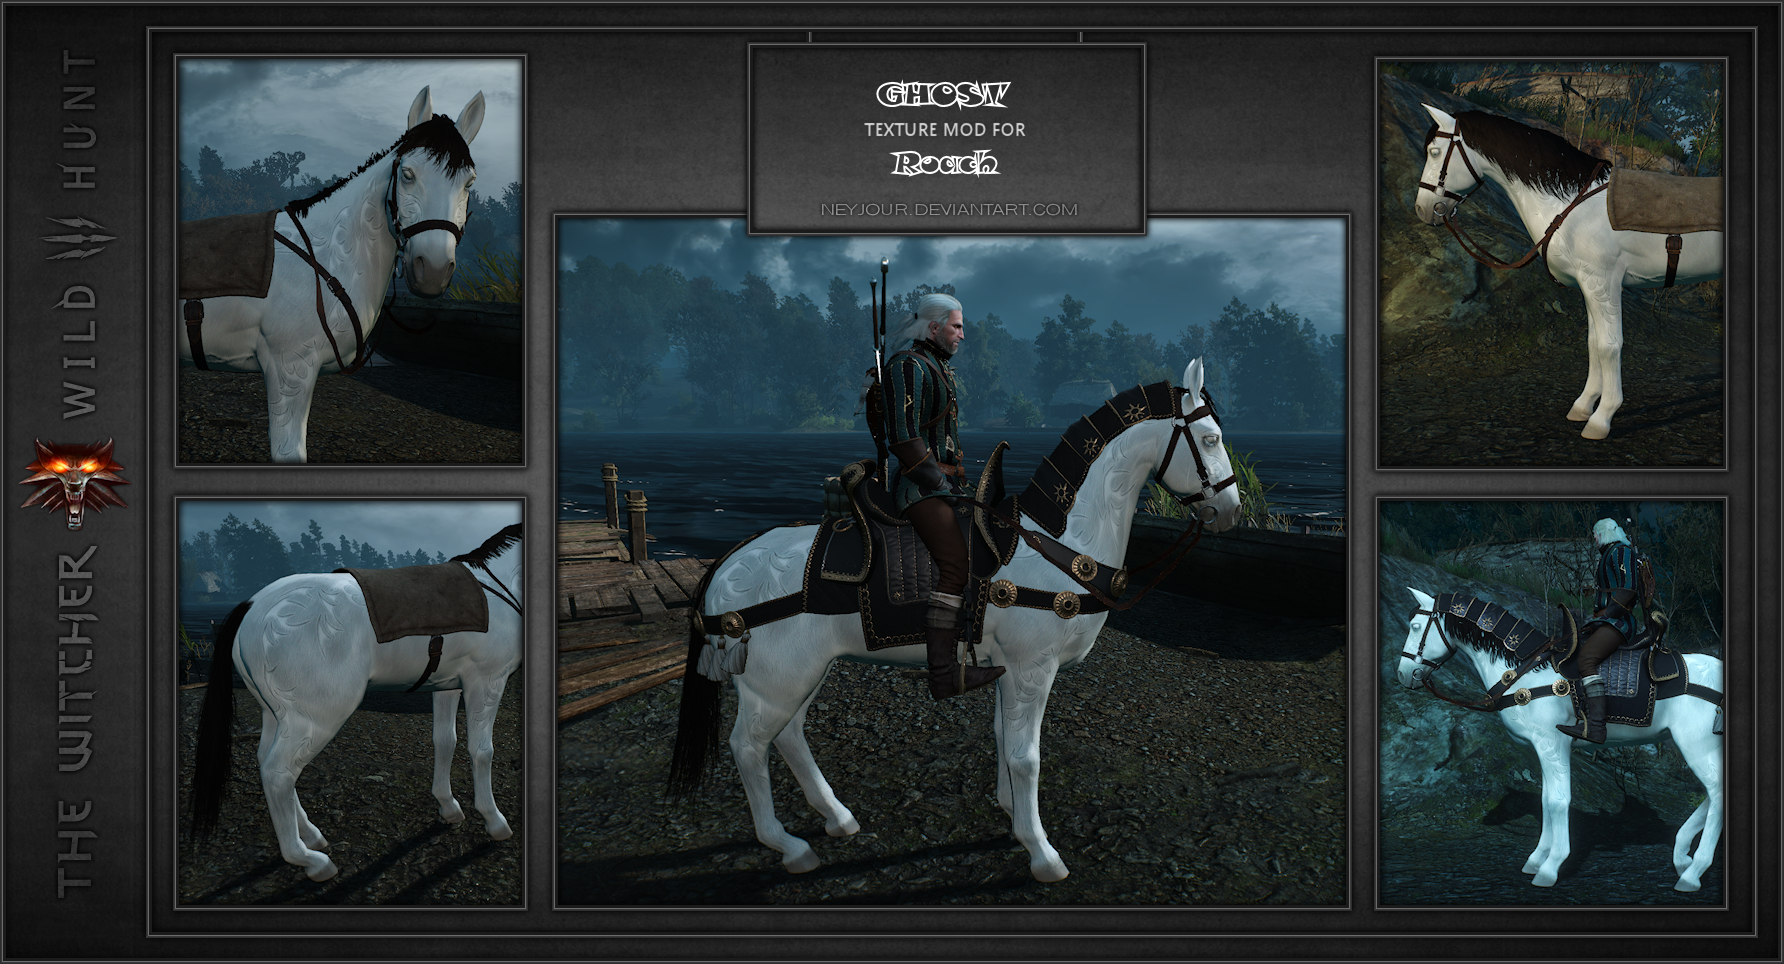 Ghost Texture MOD for Roach by Neyjour on DeviantArt